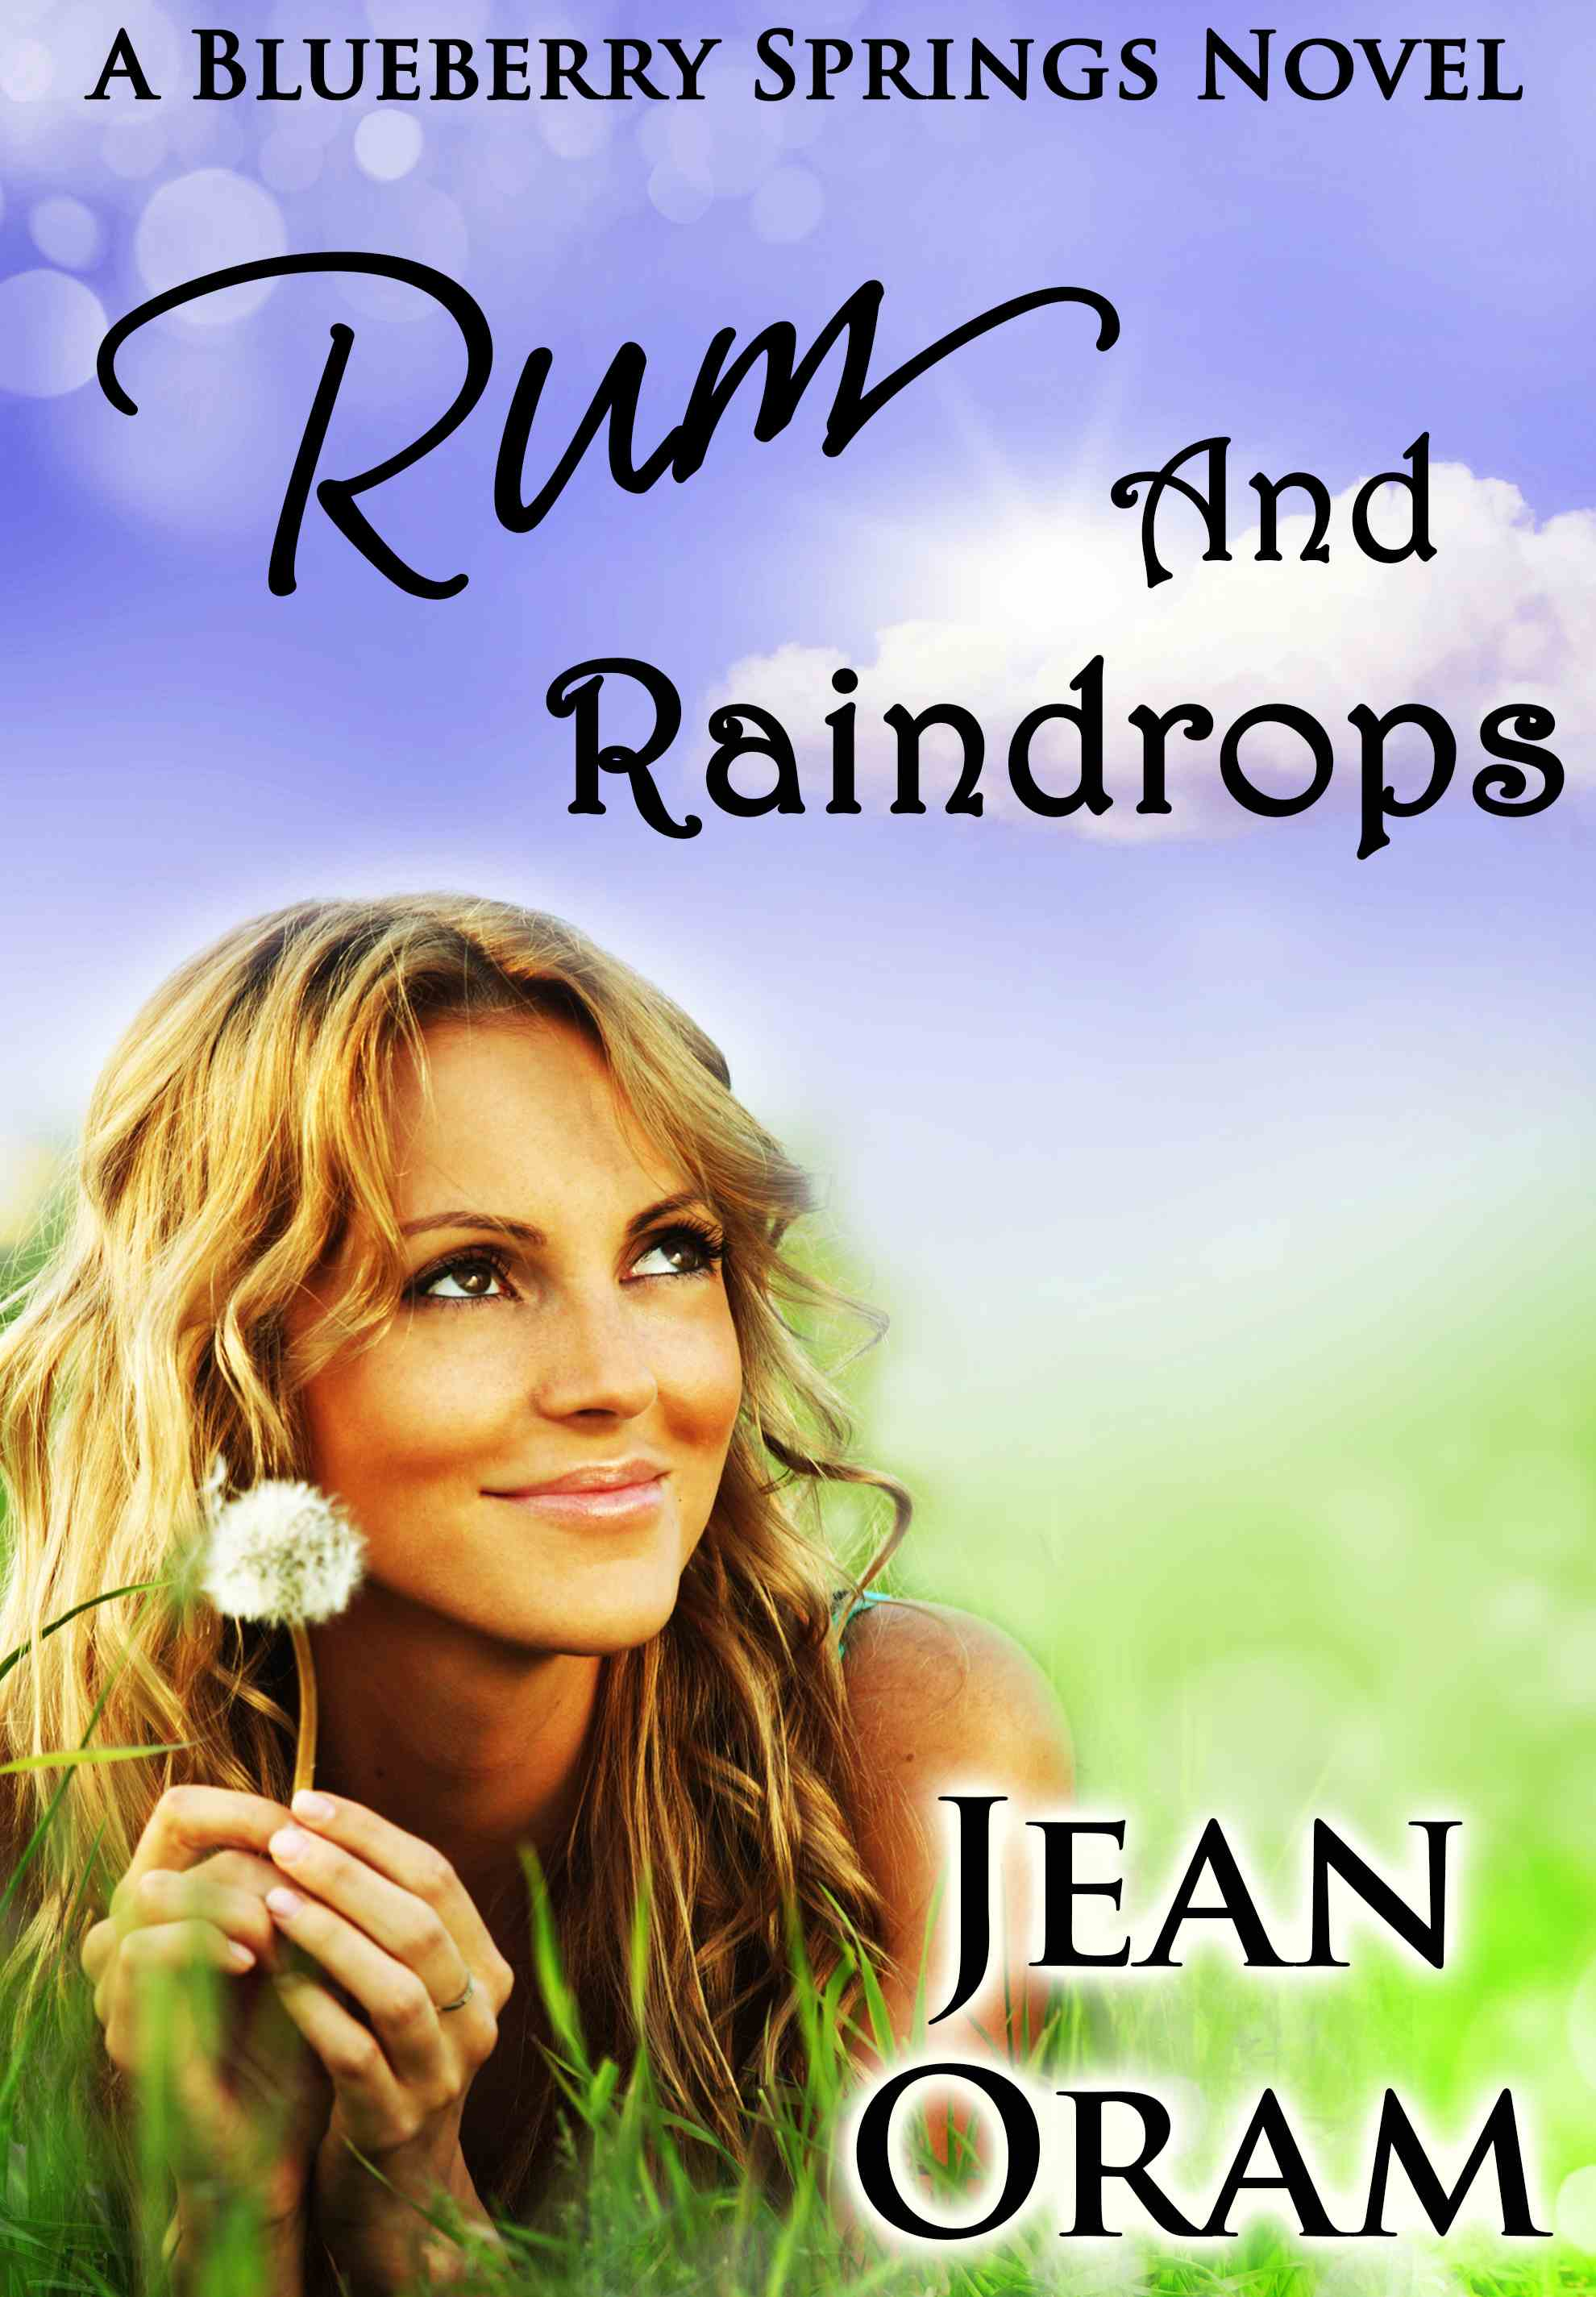 Rum and Raindrops: Book 3 in the Blueberry Springs series by Jean Oram